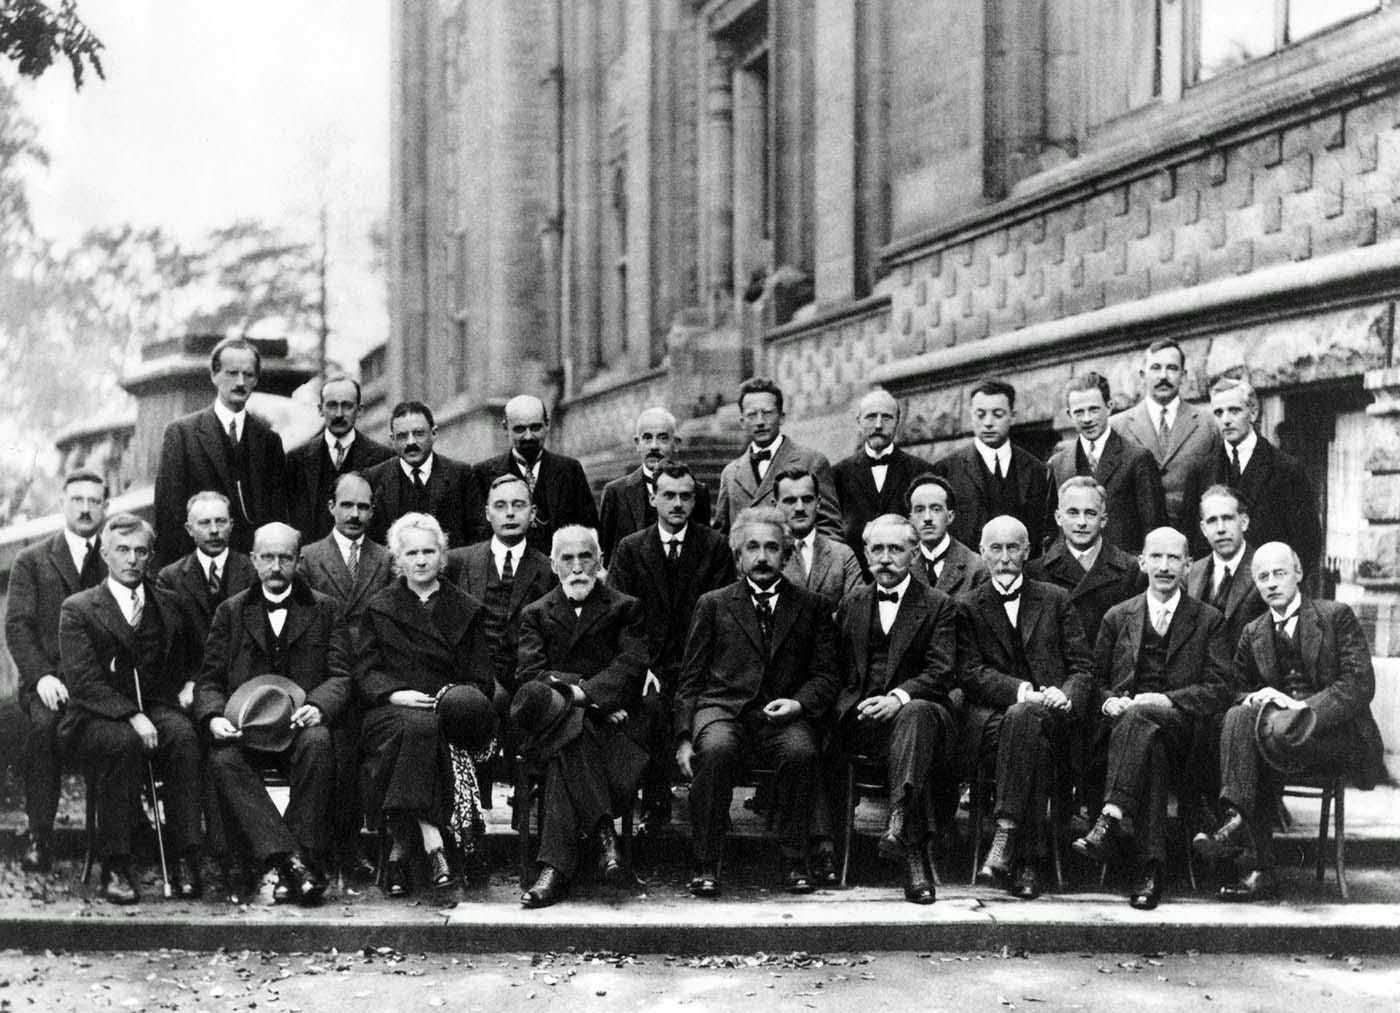 Front row: Irving Langmuir, Max Planck, Marie Curie, Hendrik Lorentz, Albert Einstein, Paul Langevin, Charles-Eugène Guye, C.T.R Wilson, Owen Richardson. Middle row: Peter Debye, Martin Knudsen, William Lawrence Bragg, Hendrik Anthony Kramers, Paul Dirac, Arthur Compton, Louis de Broglie, Max Born, Niels Bohr. Back row: Auguste Piccard, Émile Henriot, Paul Ehrenfest, Édouard Herzen, Théophile de Donder, Erwin Schrödinger, JE Verschaffelt, Wolfgang Pauli, Werner Heisenberg, Ralph Fowler, Léon Brillouin. Curie, the only woman in attendance, was also the only one among them to win a Nobel Prize in two separate disciplines: chemistry and physics.